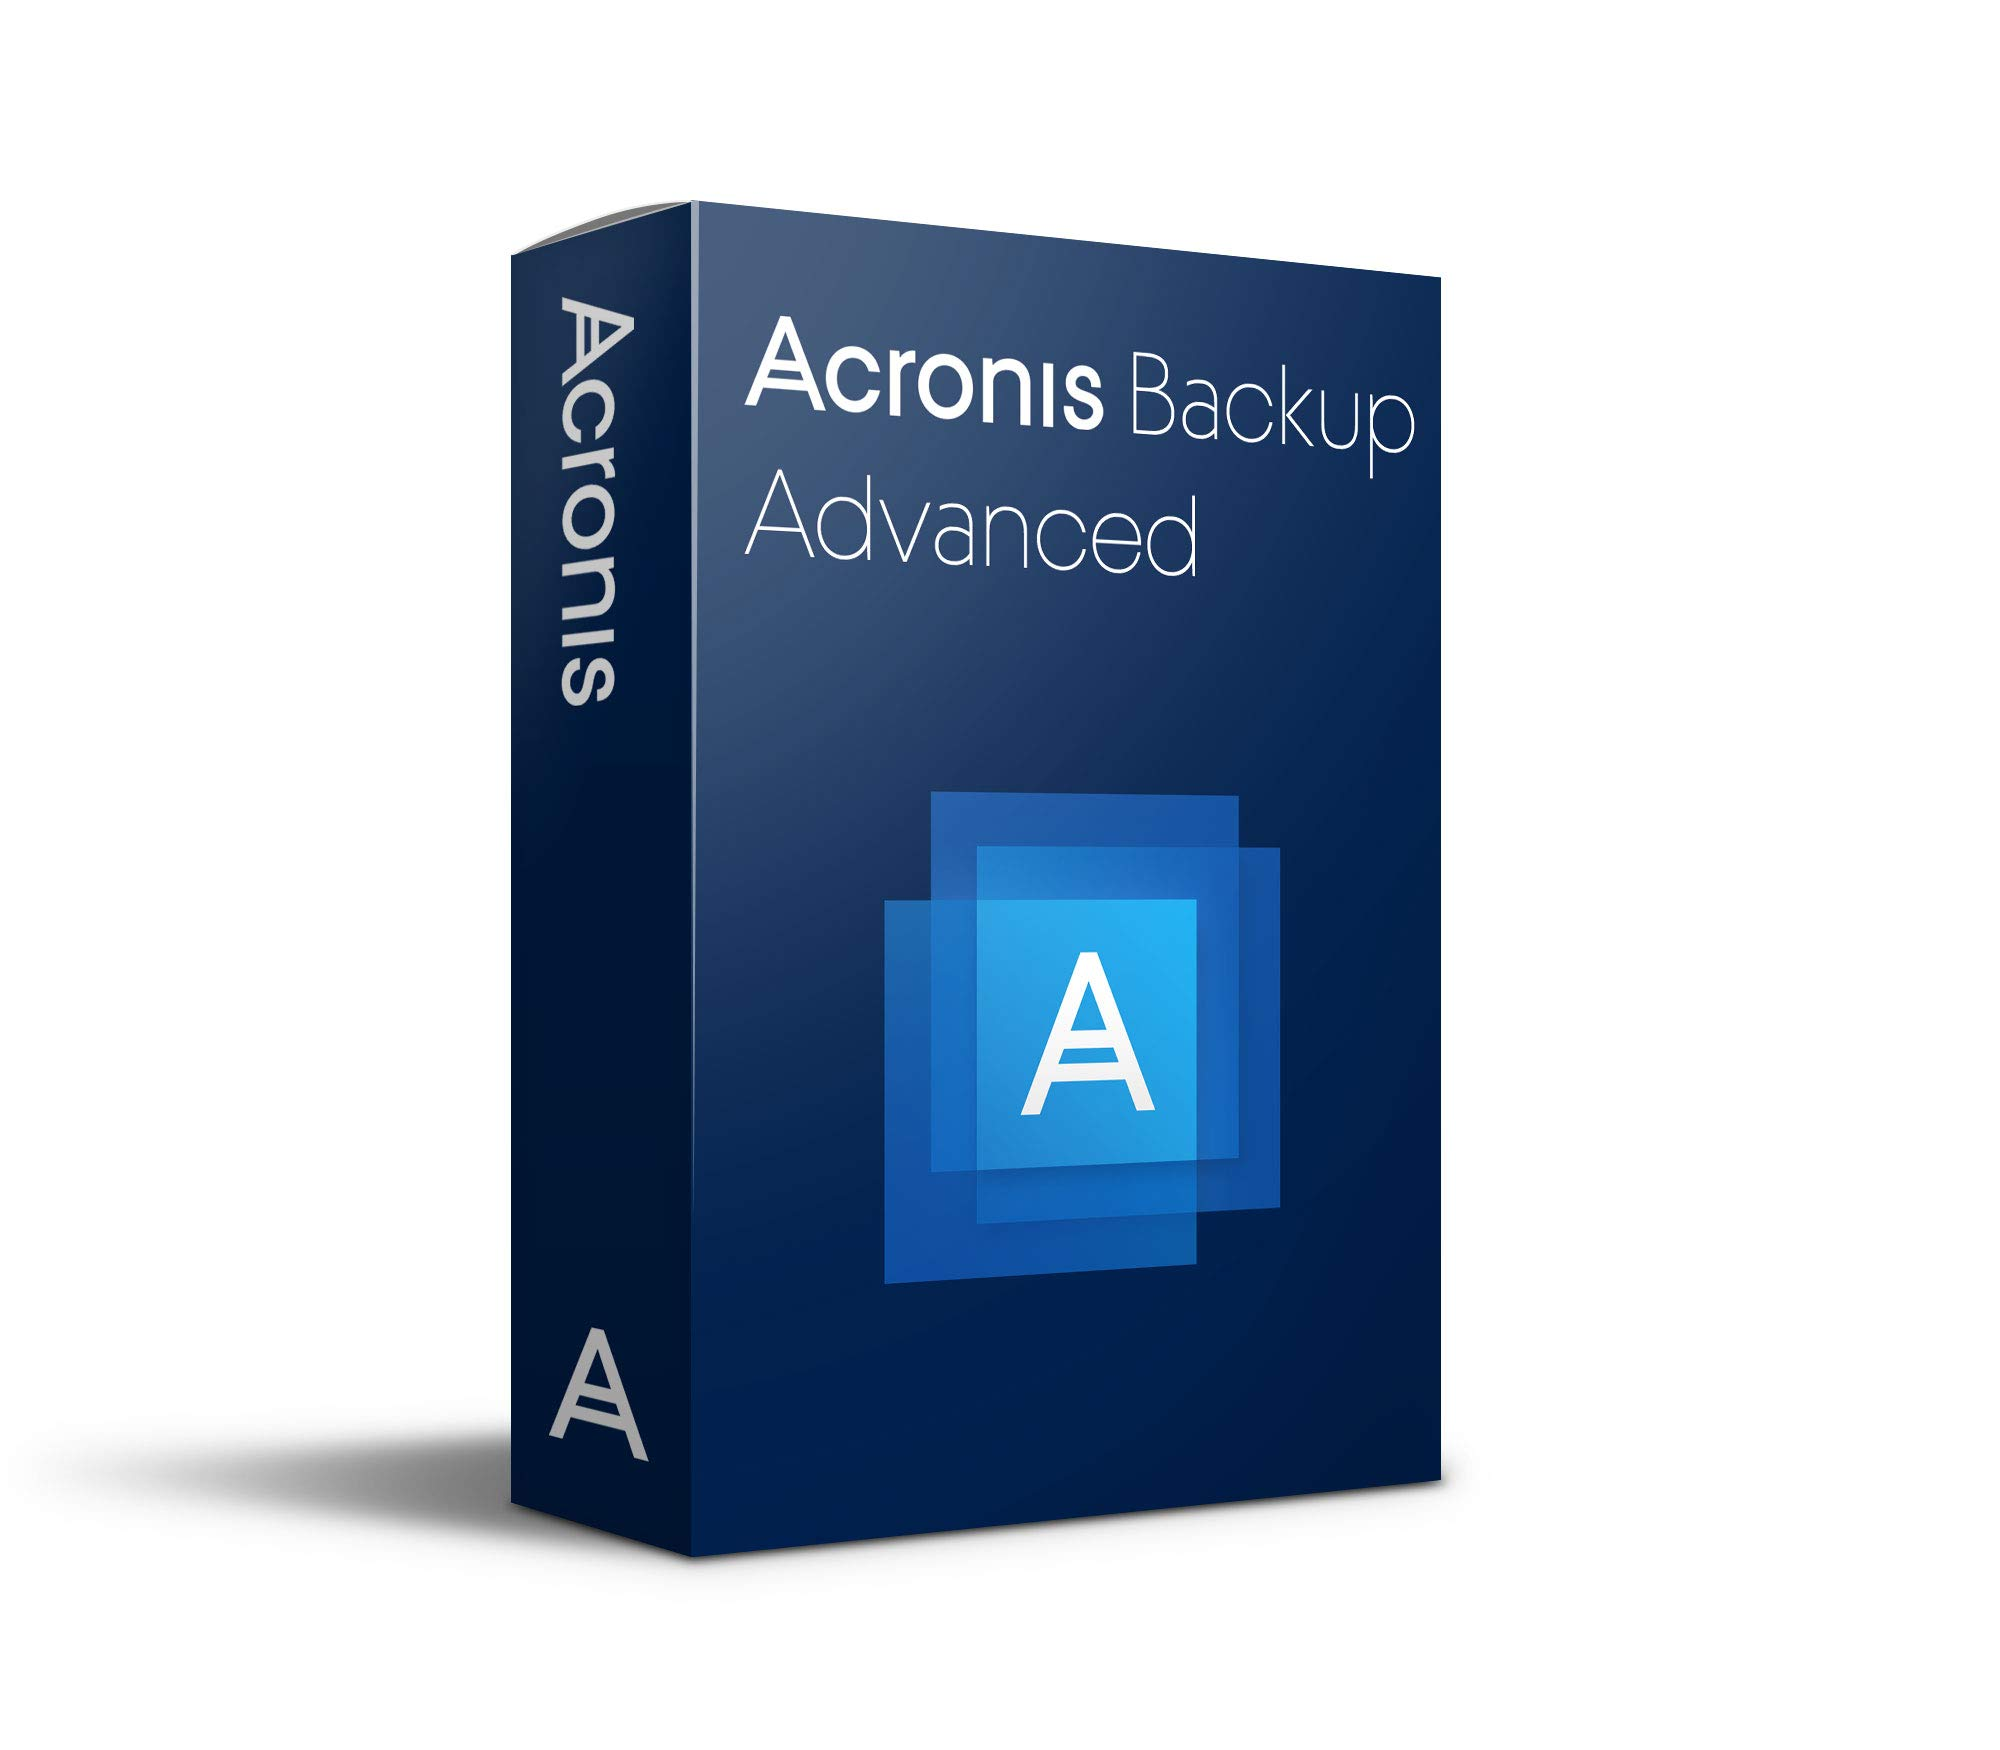 Acronis | OF6BEBLOS11 | Backup Advanced Office 365 Subscription License 5 Seats, 1 Year by Acronis